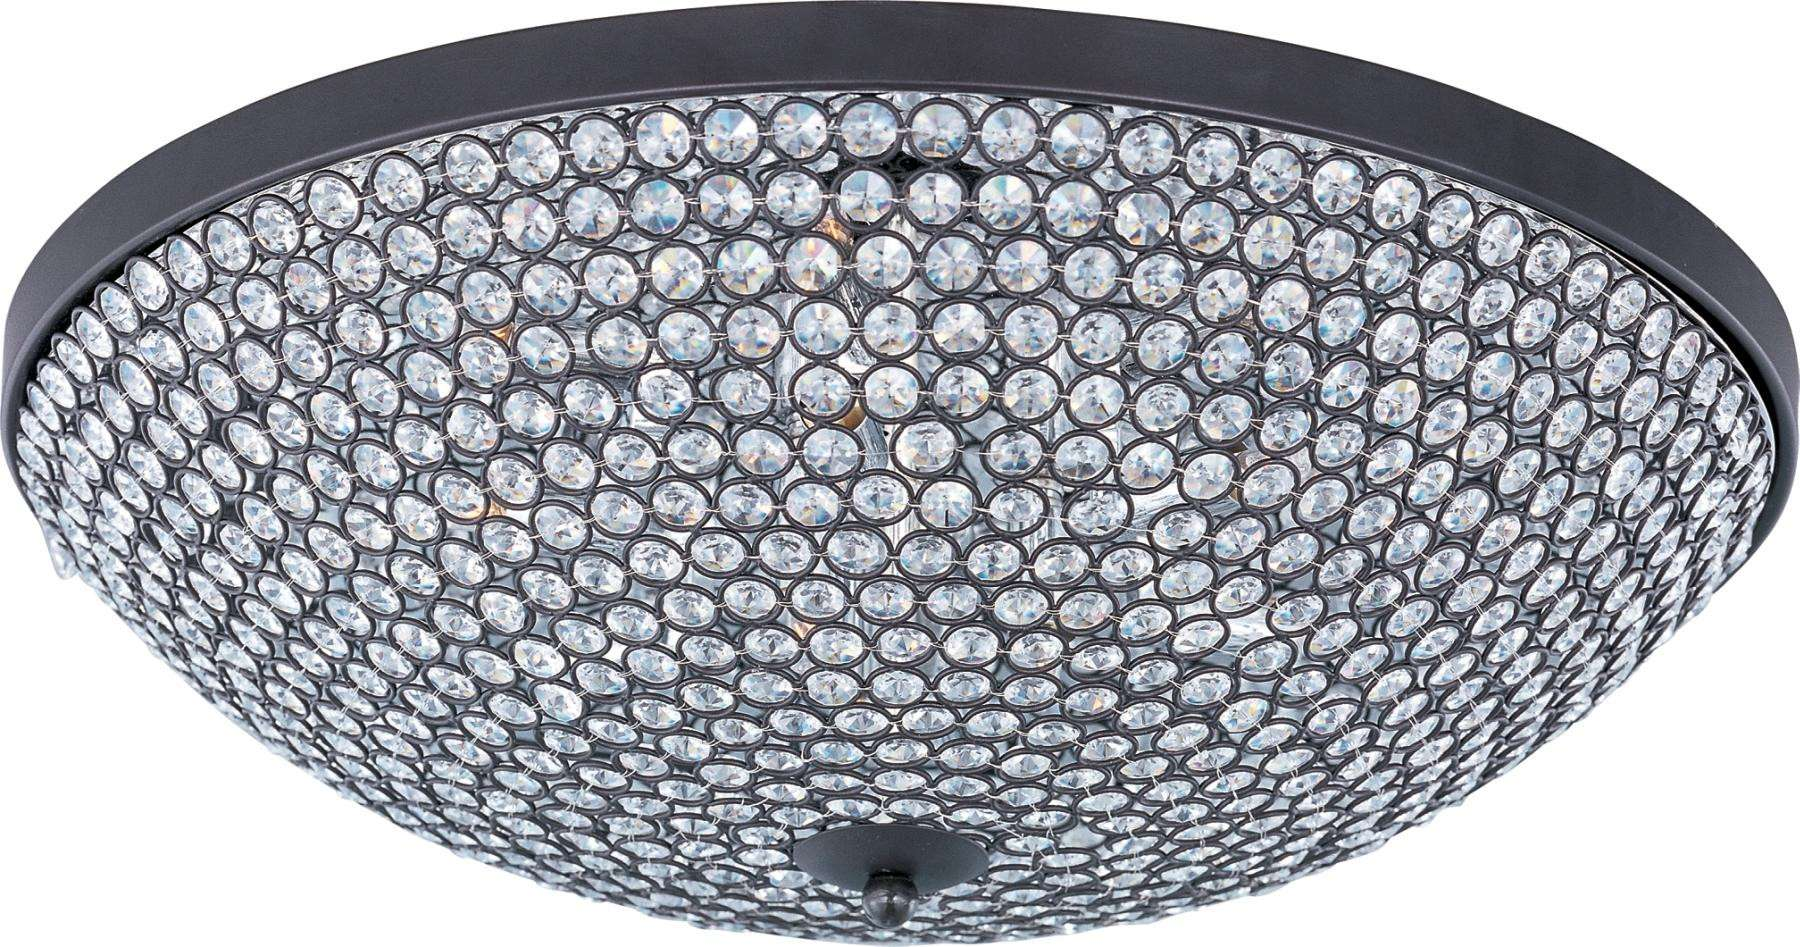 Maxim 39873BCBZ Glimmer 9-Light Flush Mount in Bronze with Beveled Crystal glass.